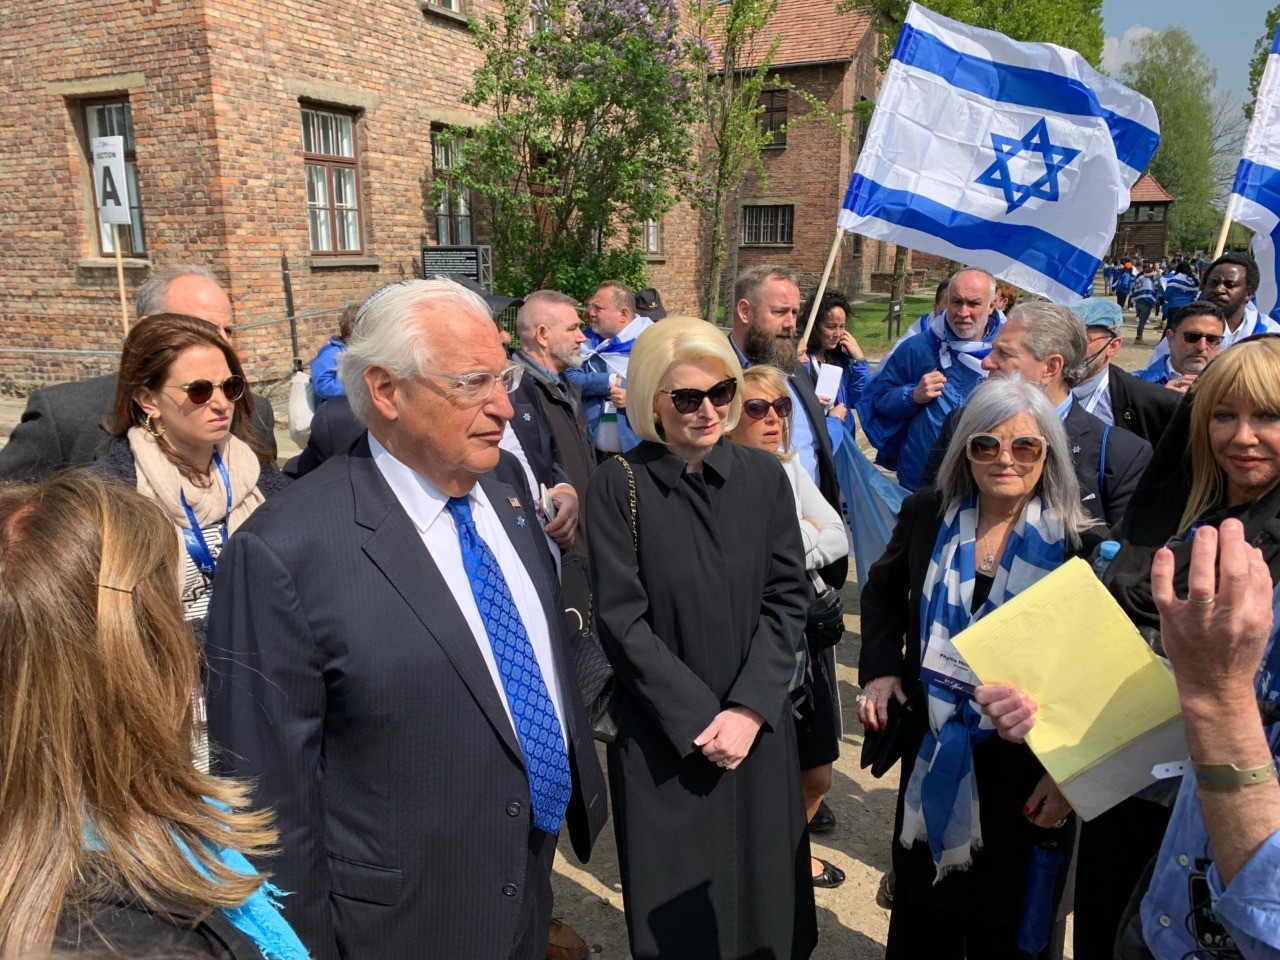 David Friedman and Ambassador to the Holy See, Calista Gingrich, were among many other ambassadors in the first-ever U.S. delegation to the March of the Living annual Holocaust memorial at Auschwitz